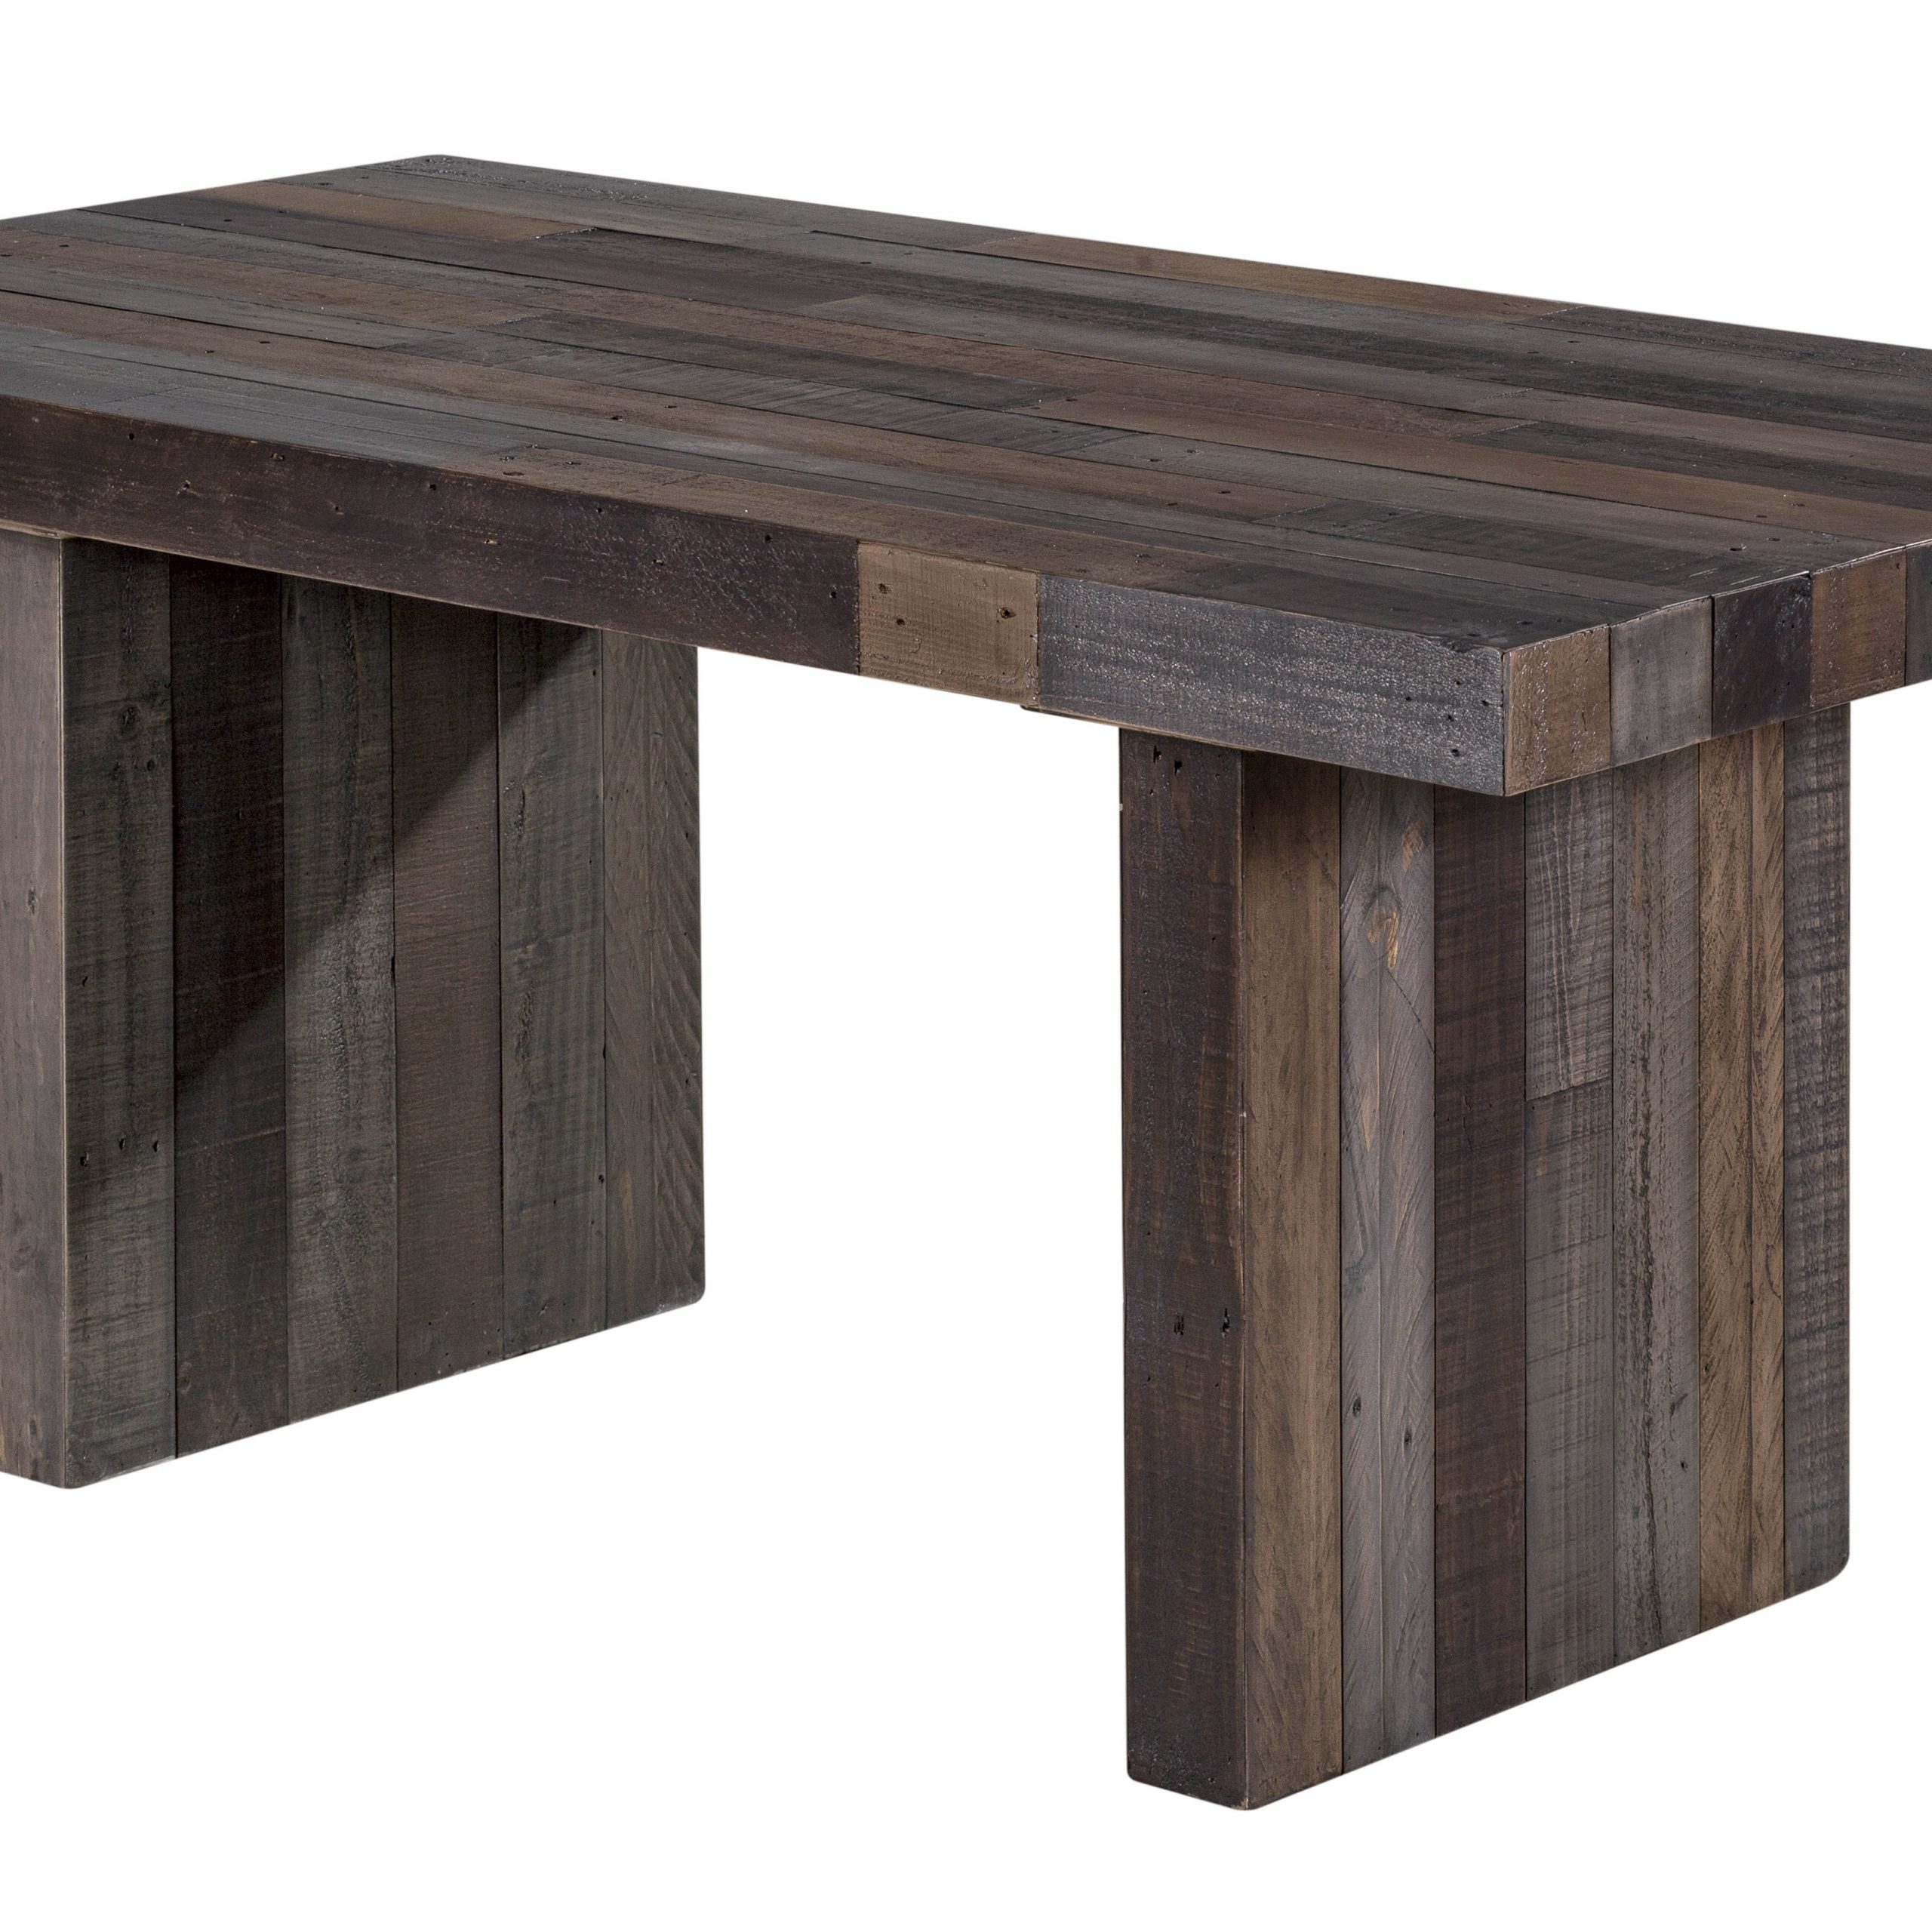 Rustic Pine Small Dining Tables within Current Moes Home Vintage Grey Small Dining Table